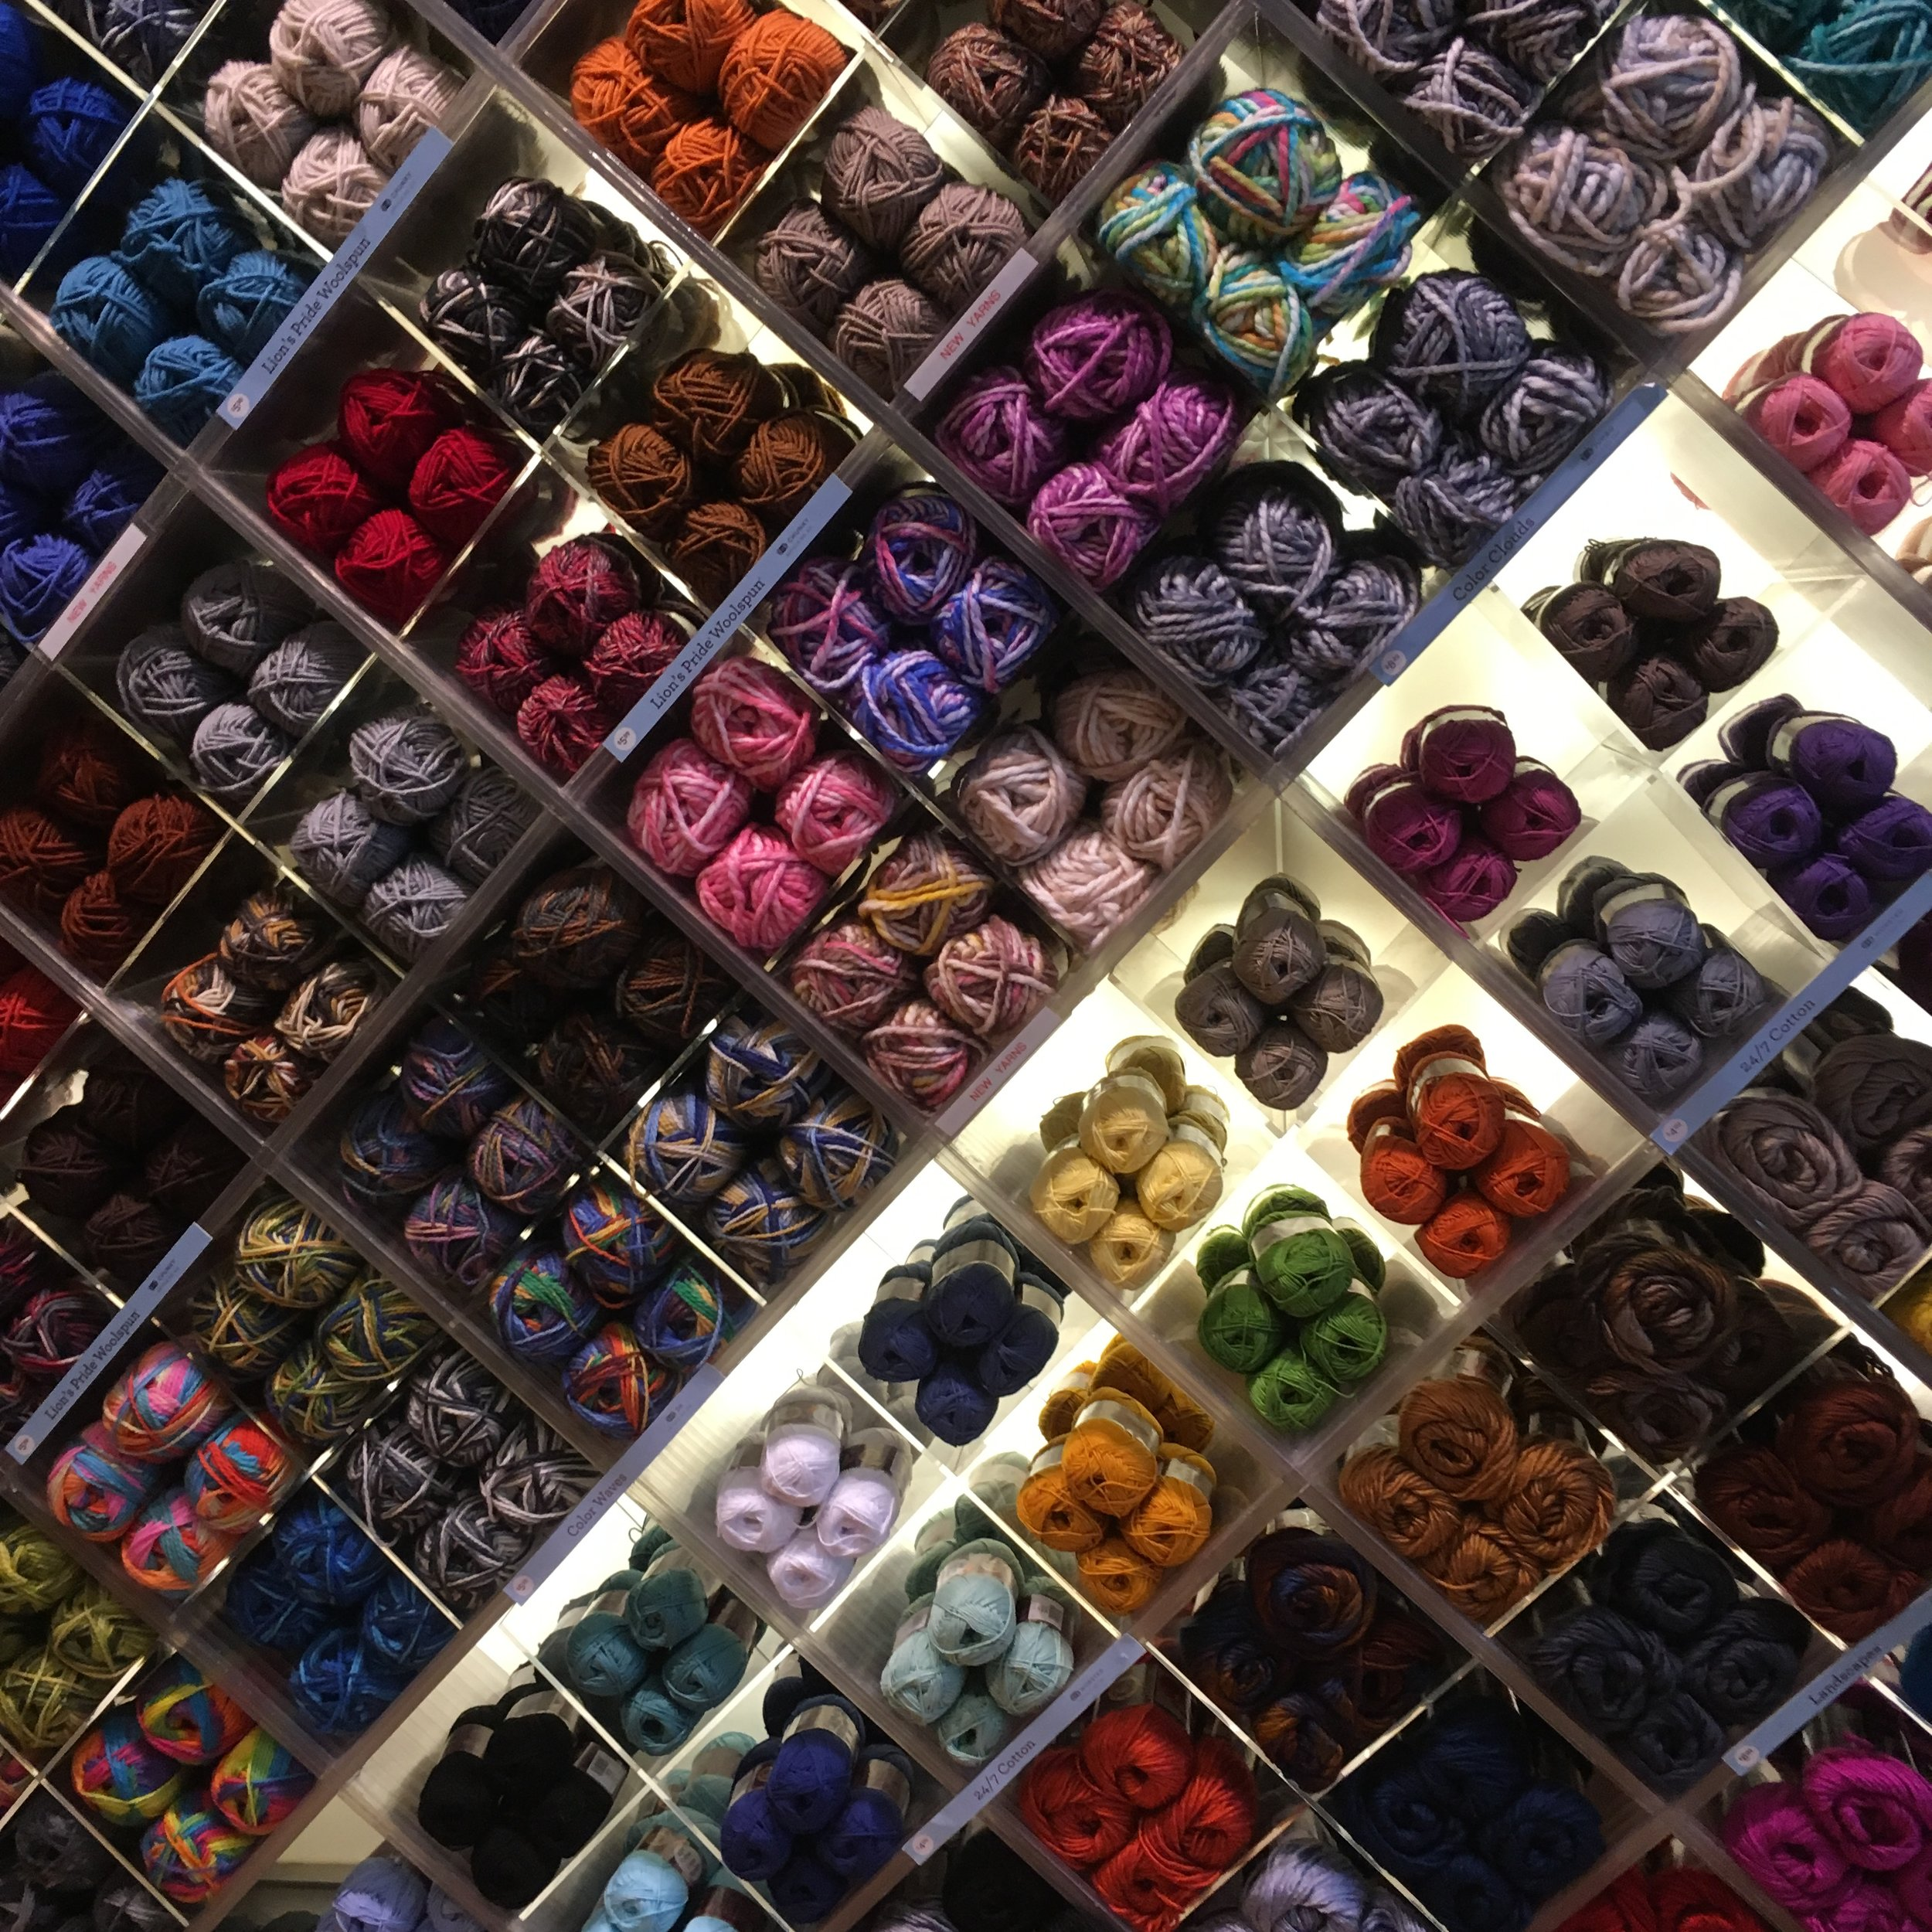 The picture doesn't do justice to the yarn display.